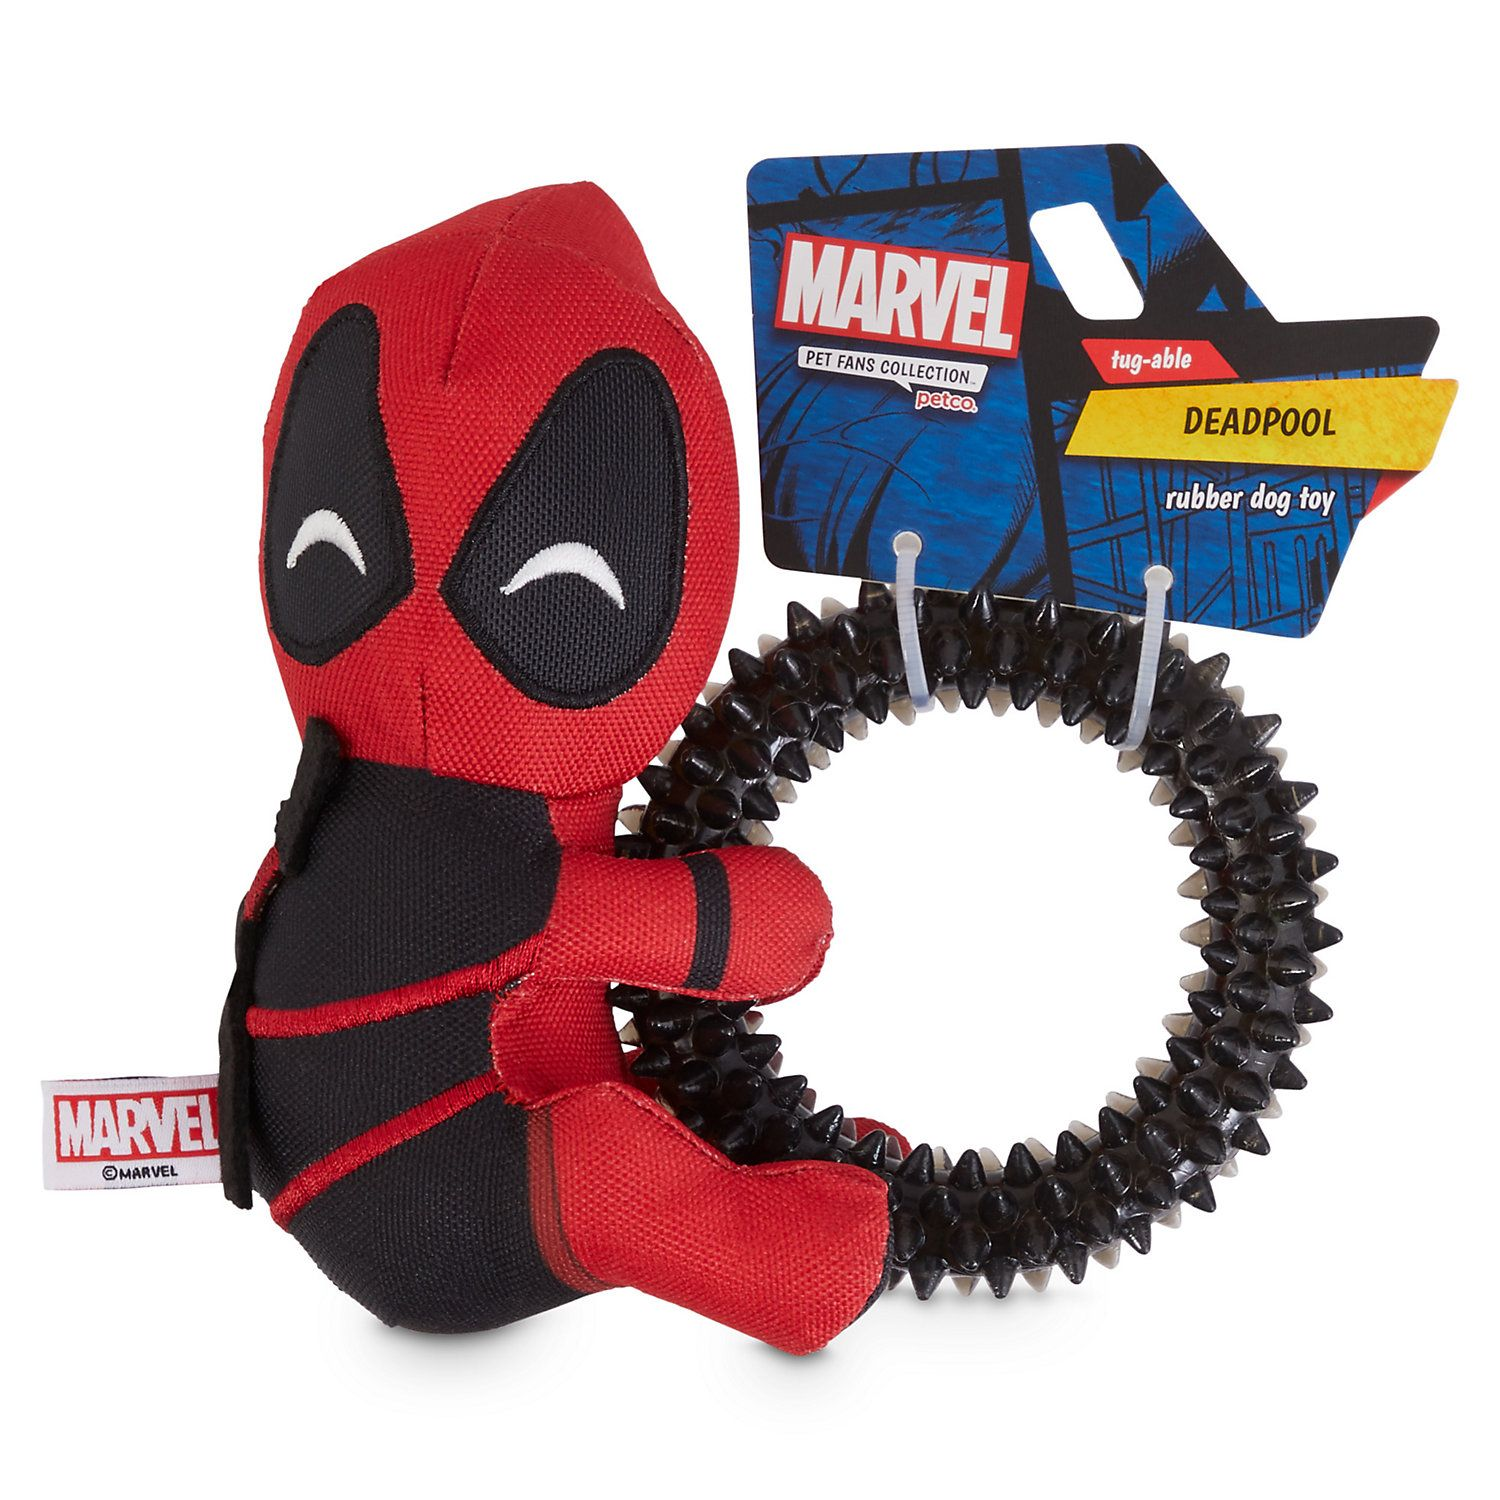 Marvel Deadpool Rubber Dog Toy Small Dog Toys Dog Supplies Petco